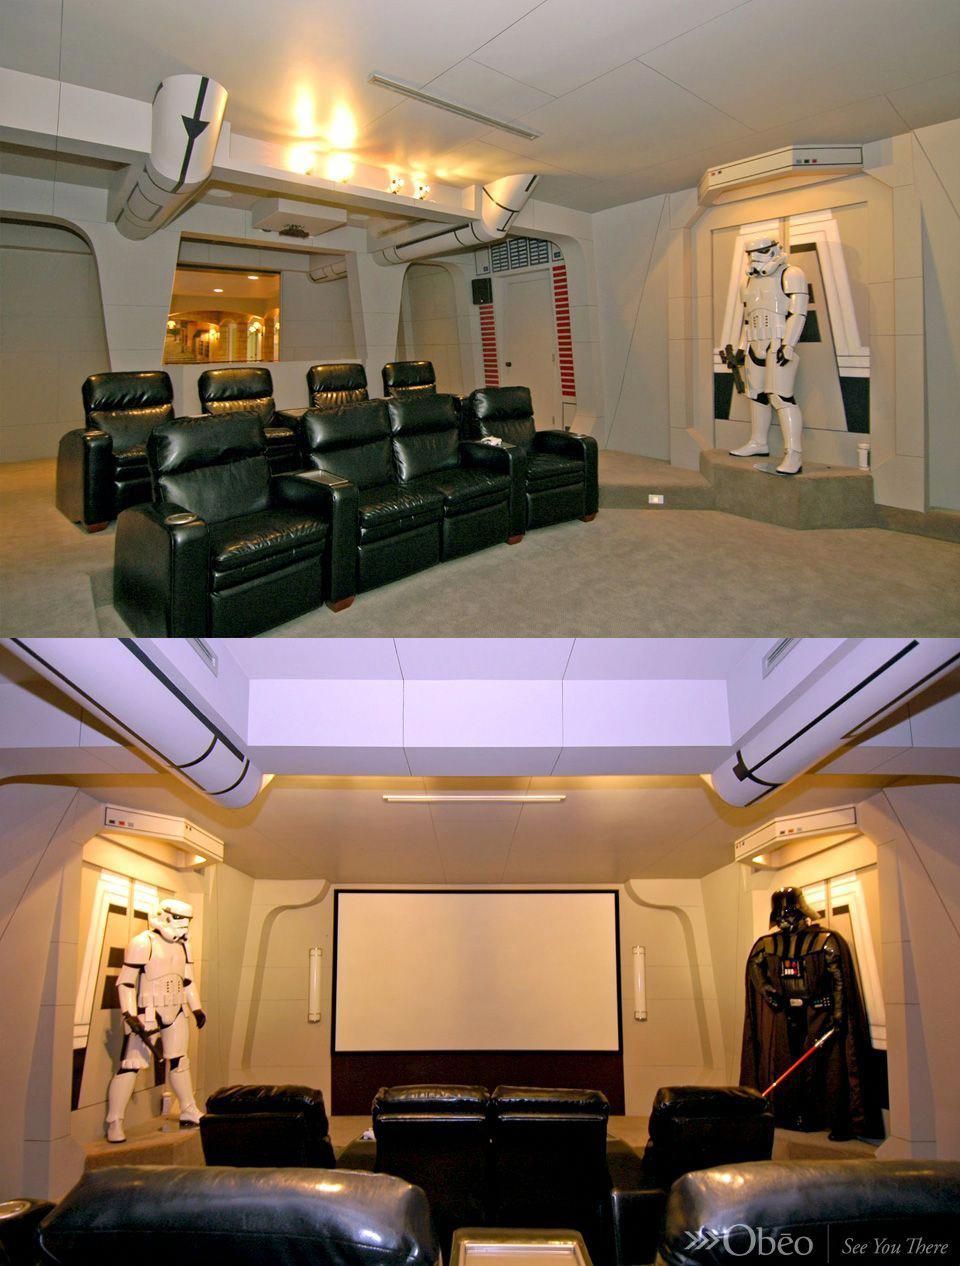 Star Wars Home Theater Room I Wonder If They Have Have The Whole Series Of Movies At Home Movie Theater Star Wars Man Cave Home Theater Rooms